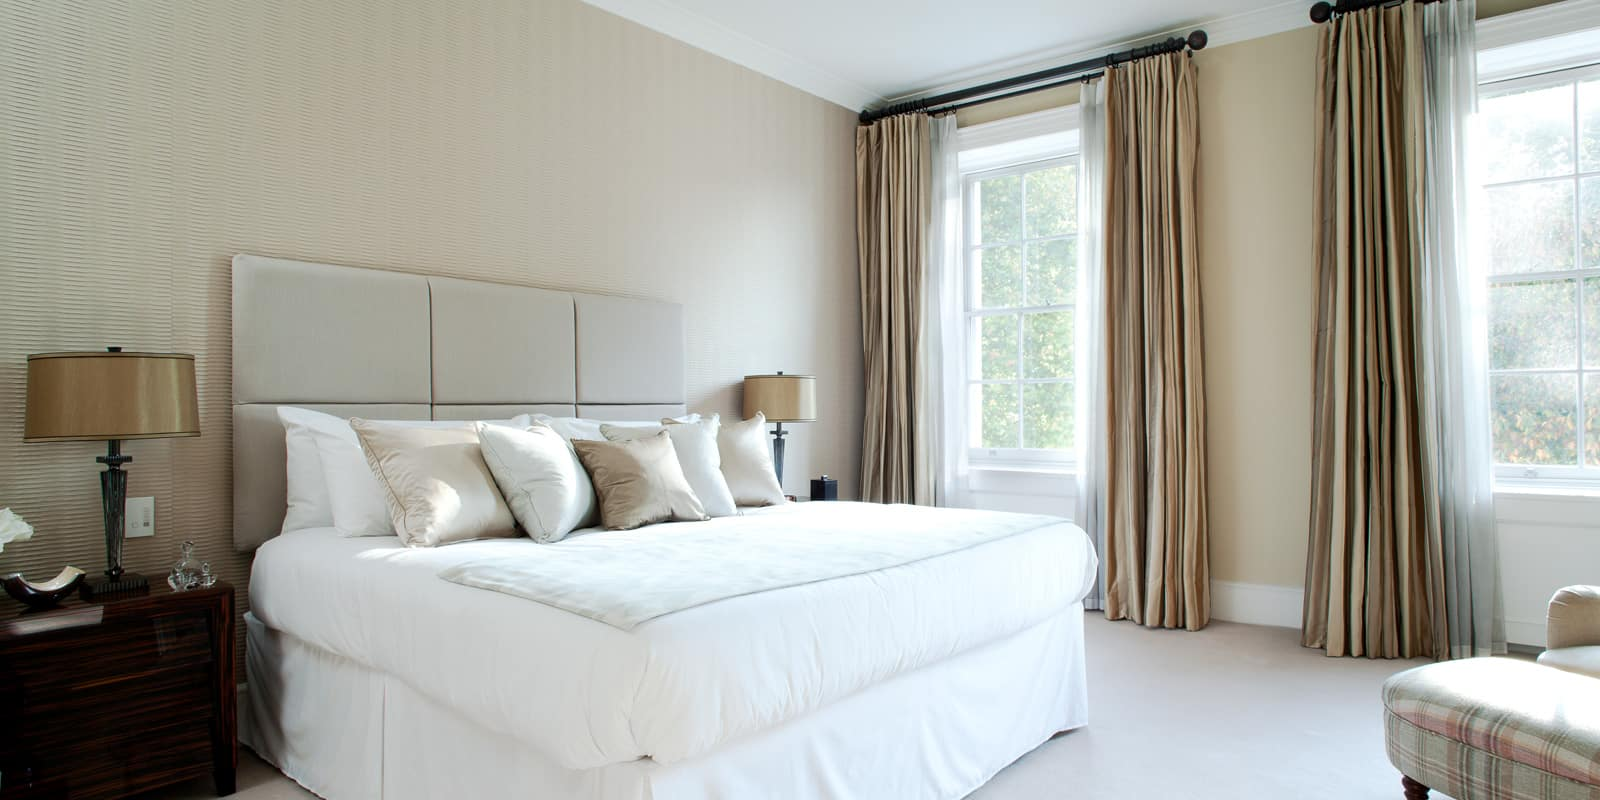 elegant bedroom in white and gold with textures walls